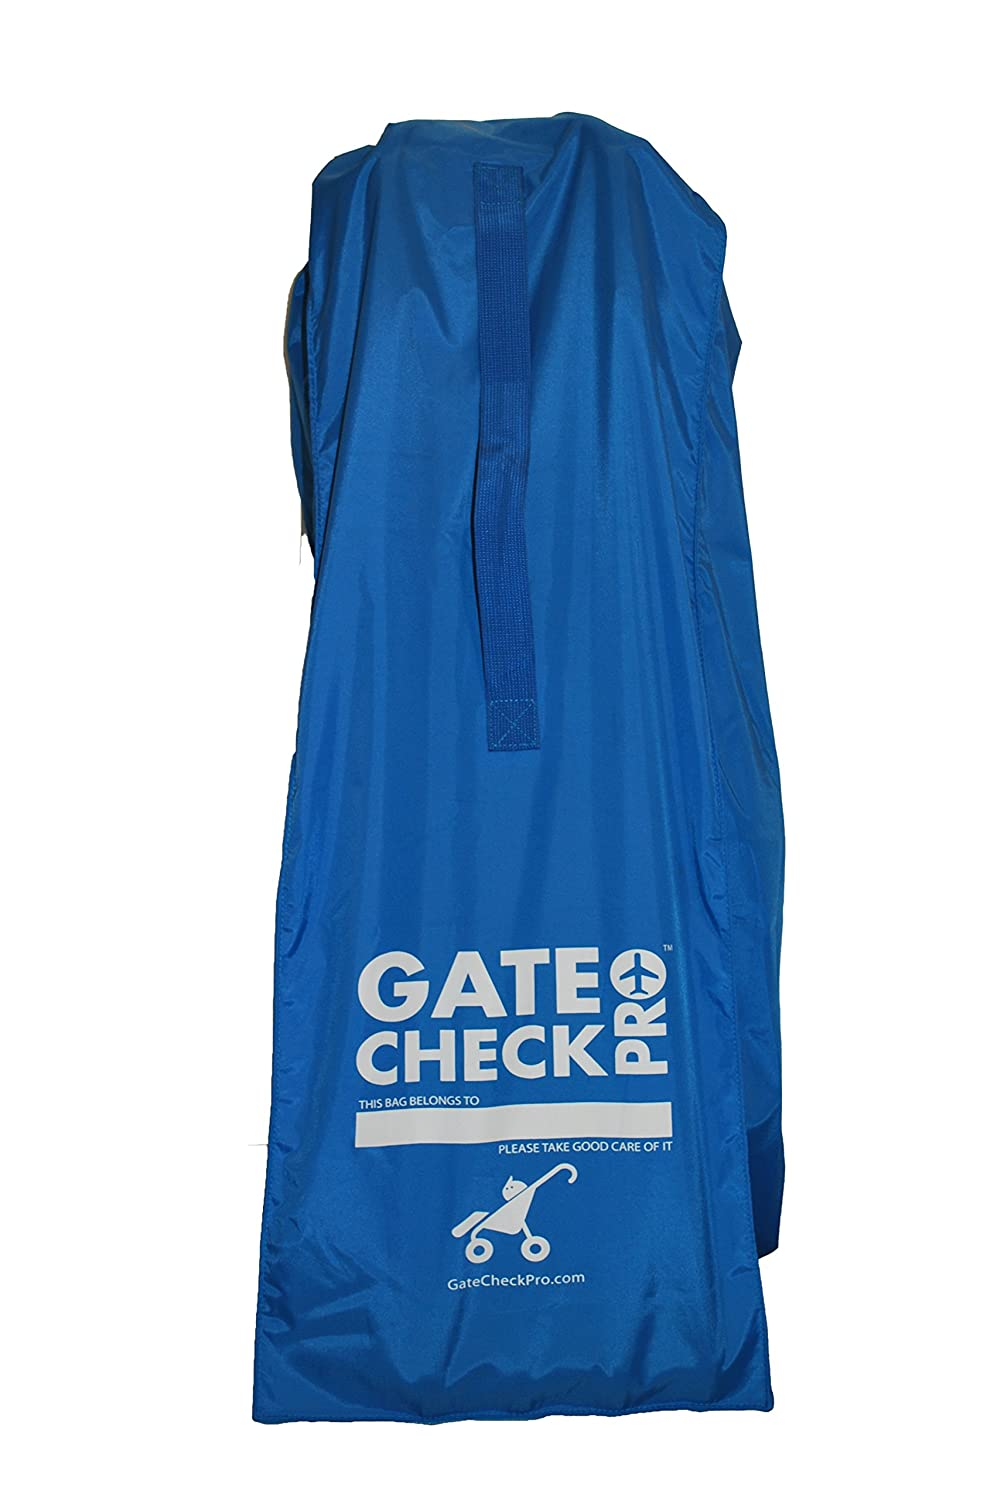 Gate Check PRO - Durable & Lightweight Stroller Travel Bag - Includes Ergonomic Shoulder Strap & Updated Closure for Ultimate comfort and Protection Love Pro Travel Gear GCPSINGLE